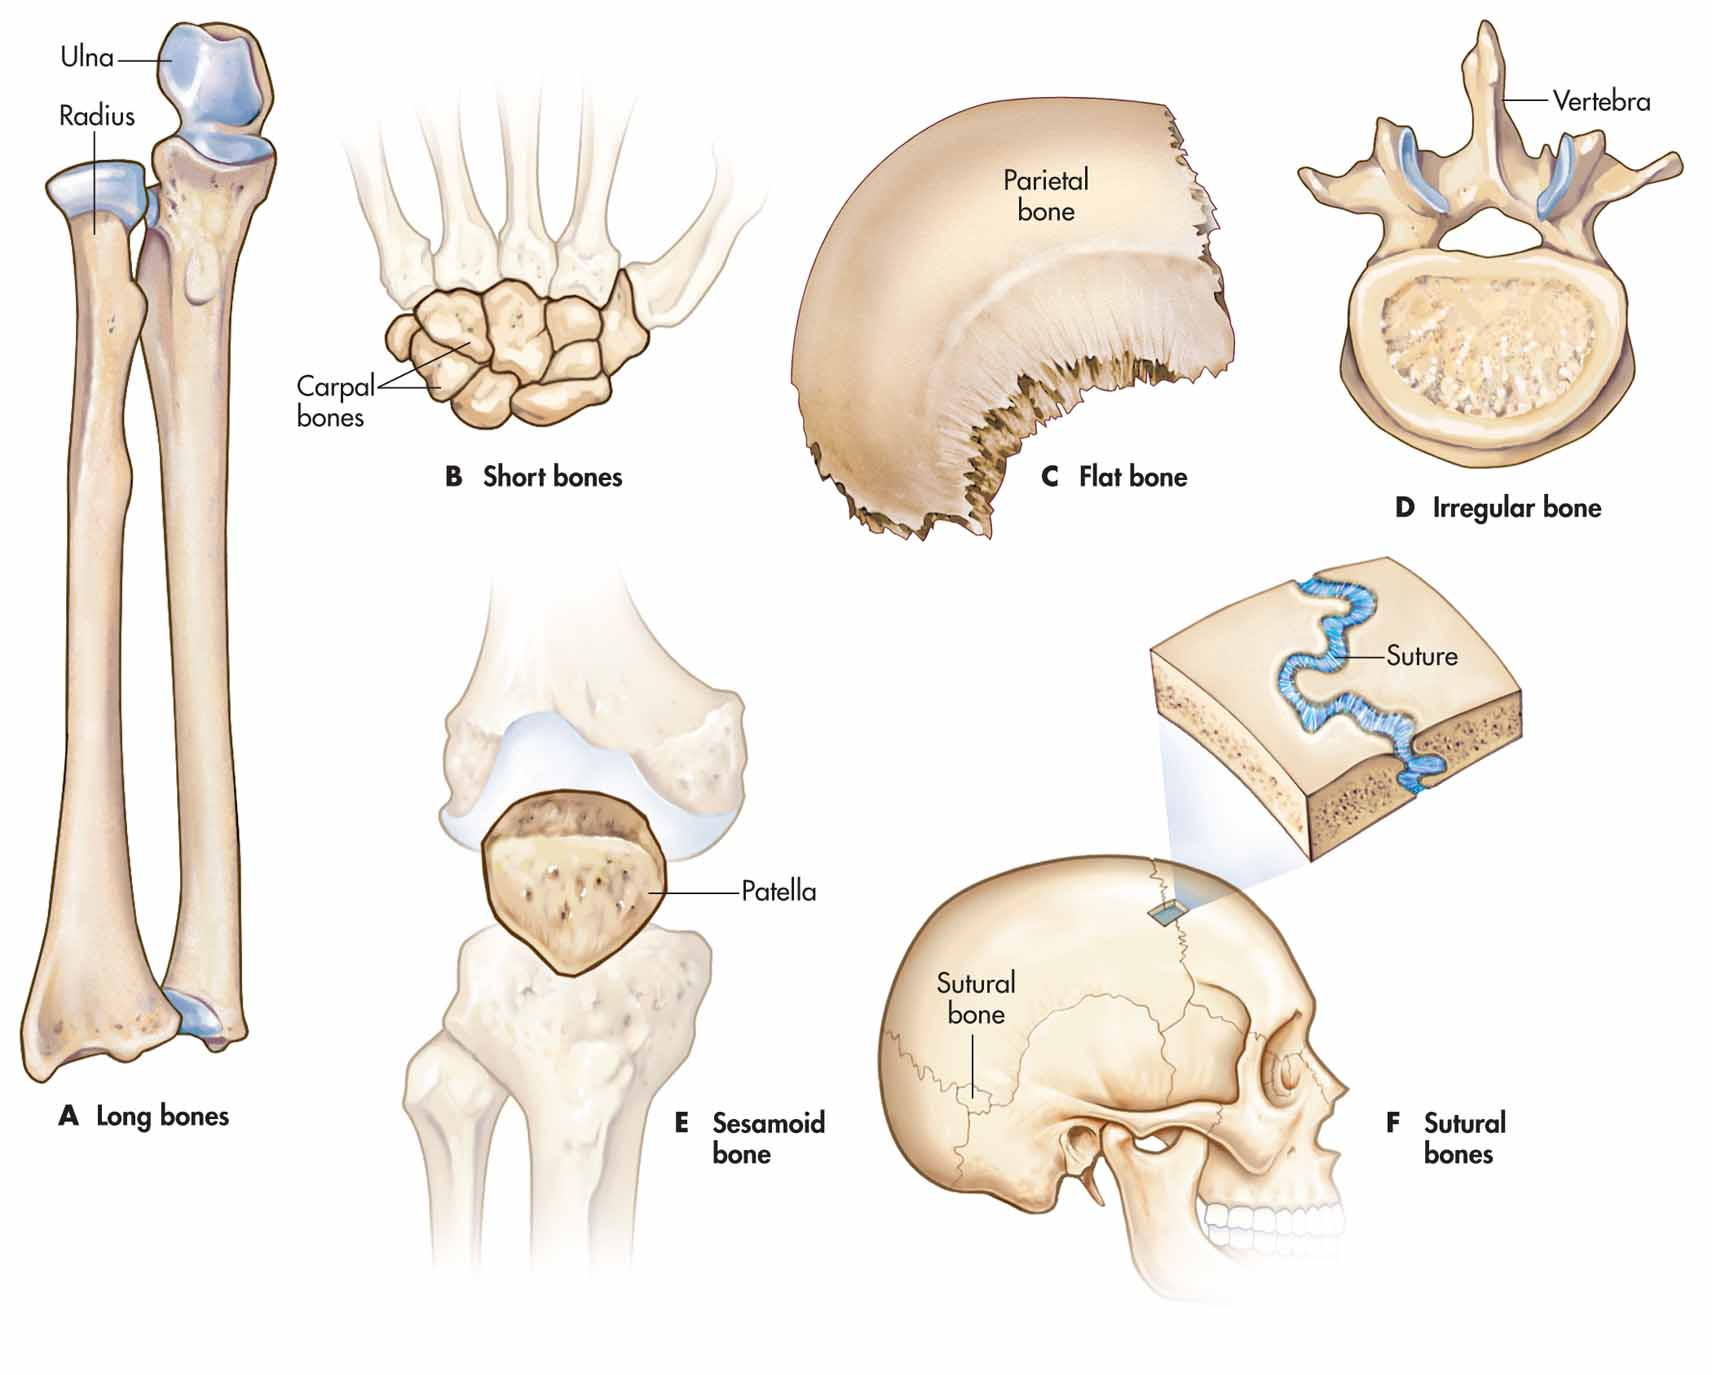 classification of bones It is essential to have a general knowledge of human anatomy to understand how your body functions and how you can take care of it the skeletal system is an important part of anatomy there are more than 200 bones in the human body of these hundreds of bones there are only four different types.